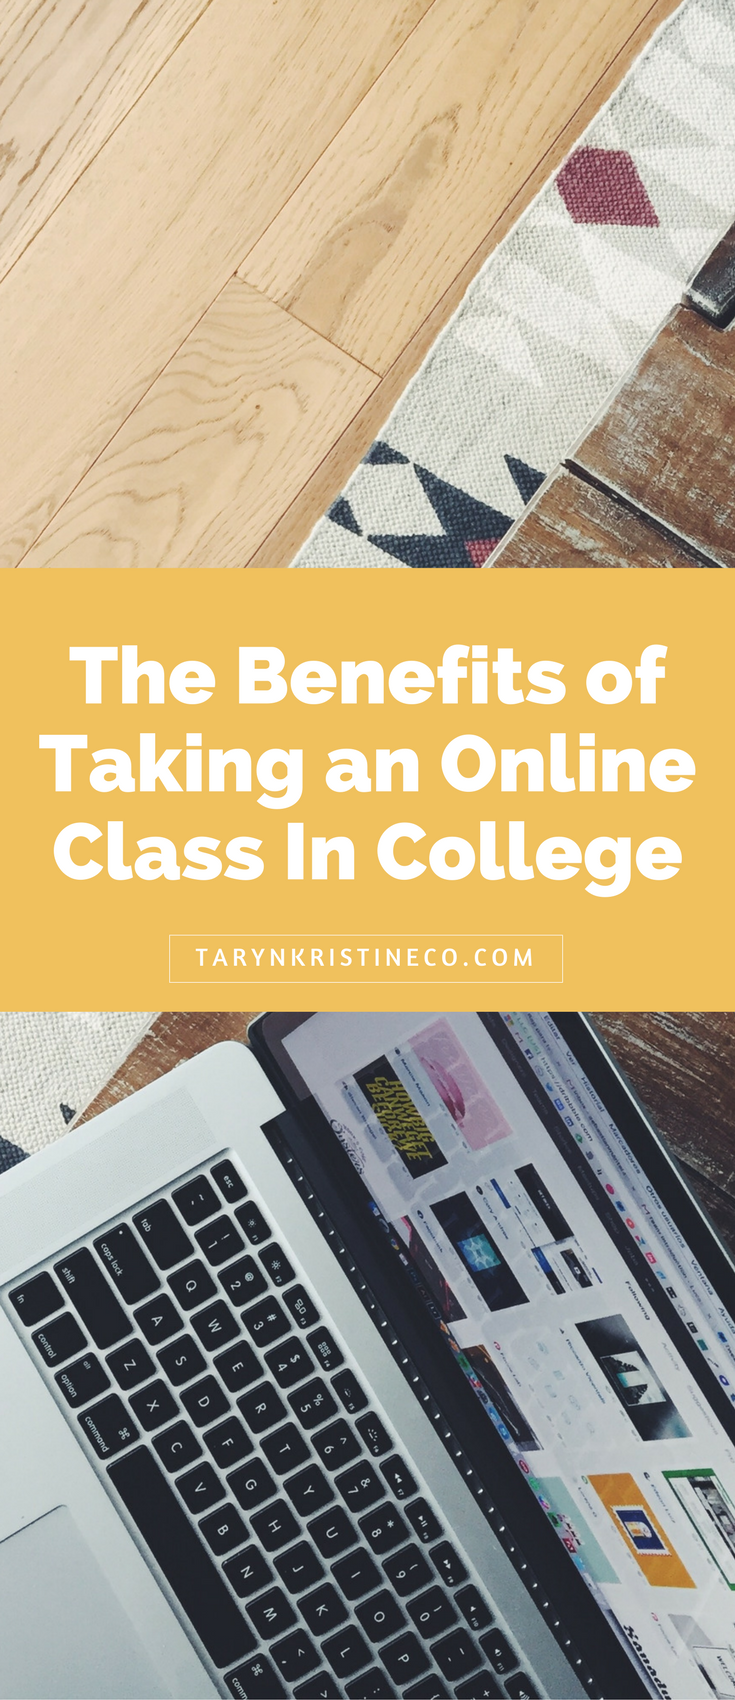 The benefits of taking an online class in college. College Tips   College Advice   College to Career   College Tips and Tricks   College Freshman   Career ... & Four Amazing Benefits of Taking An Online Class in College   TK+CO ...